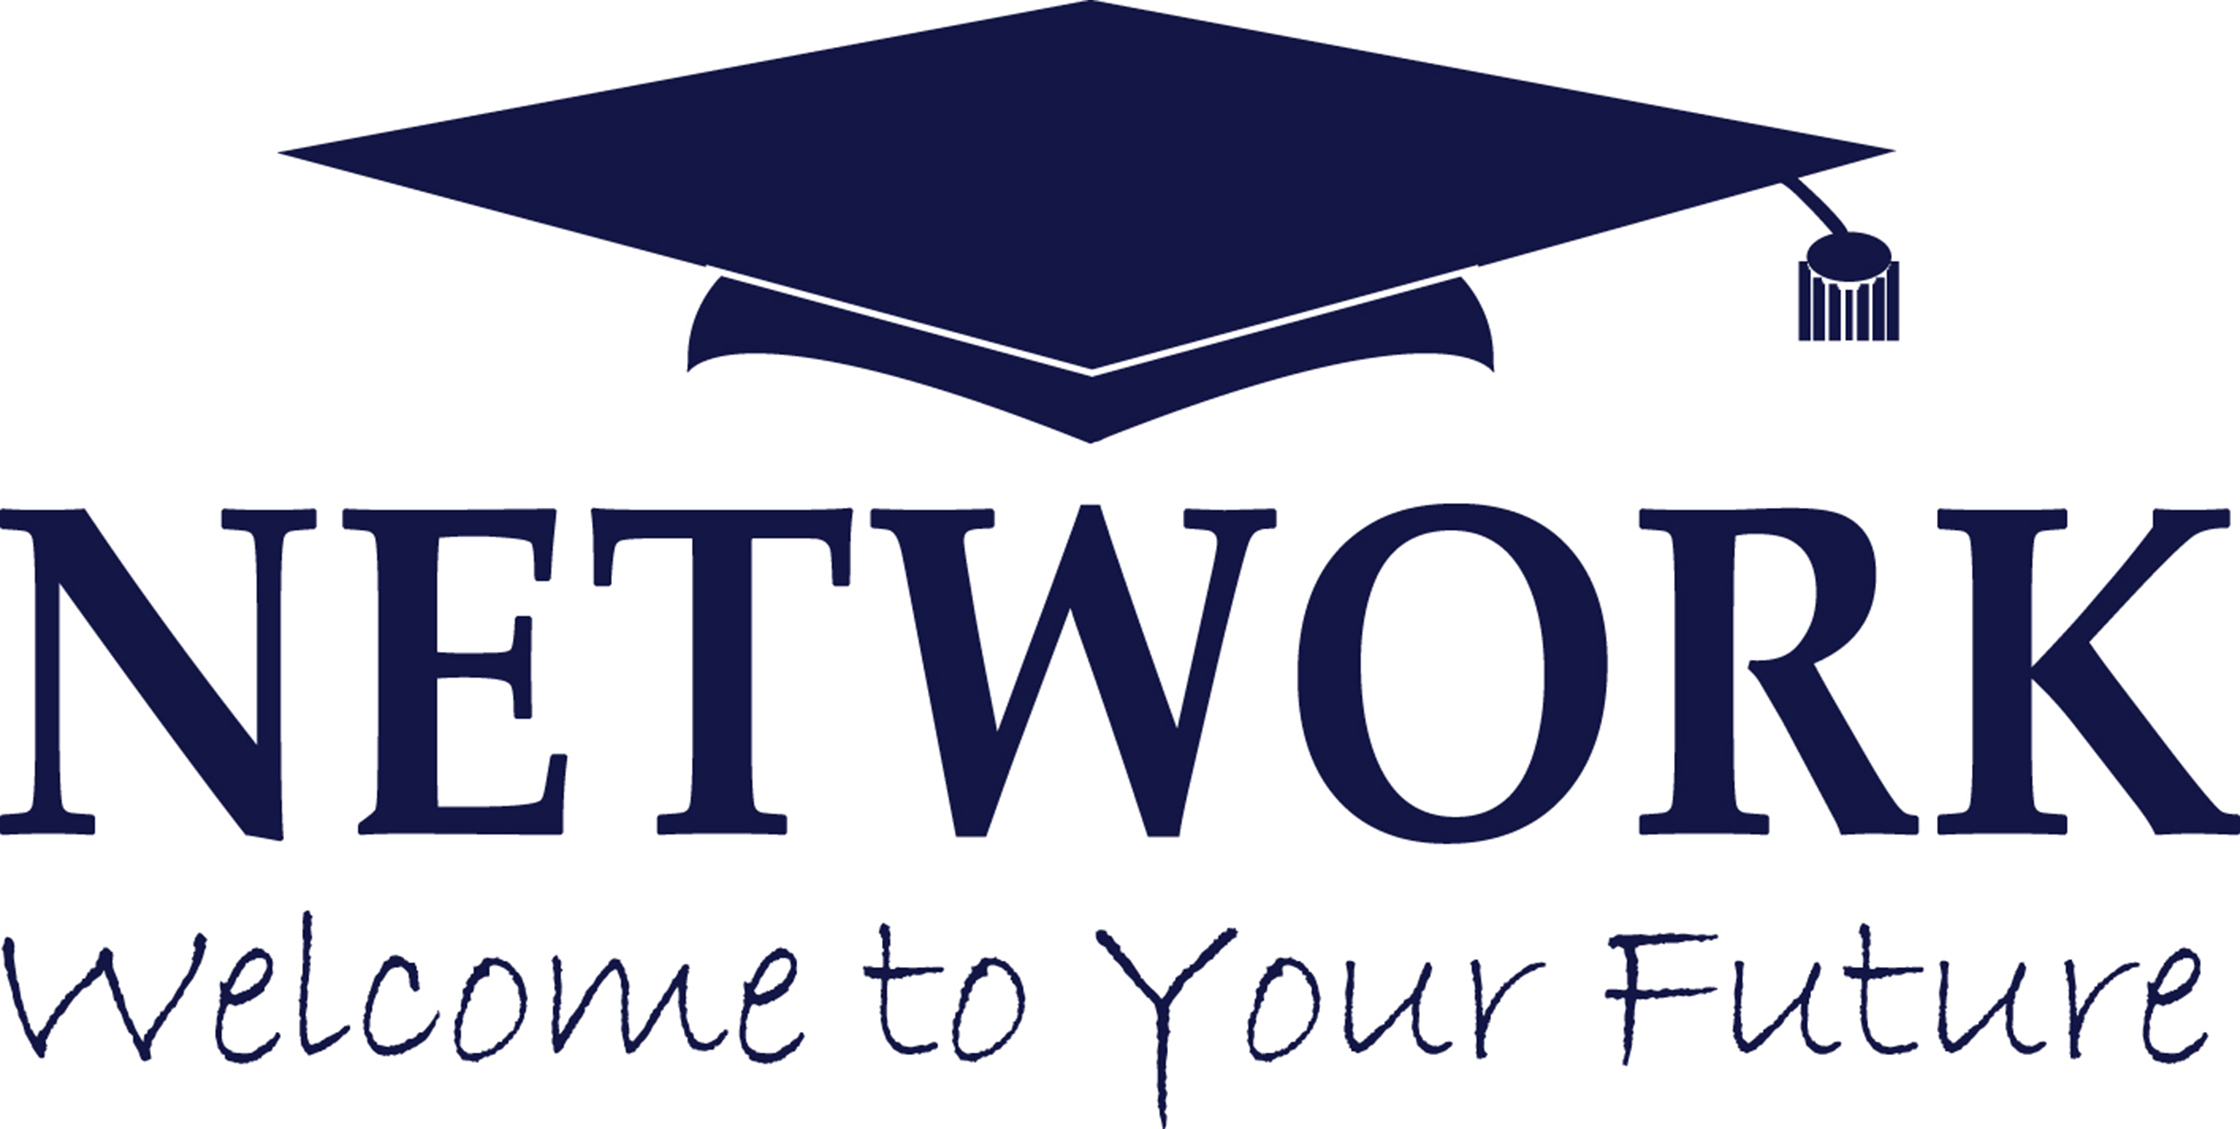 network-welcome-to-your-future 2.jpg